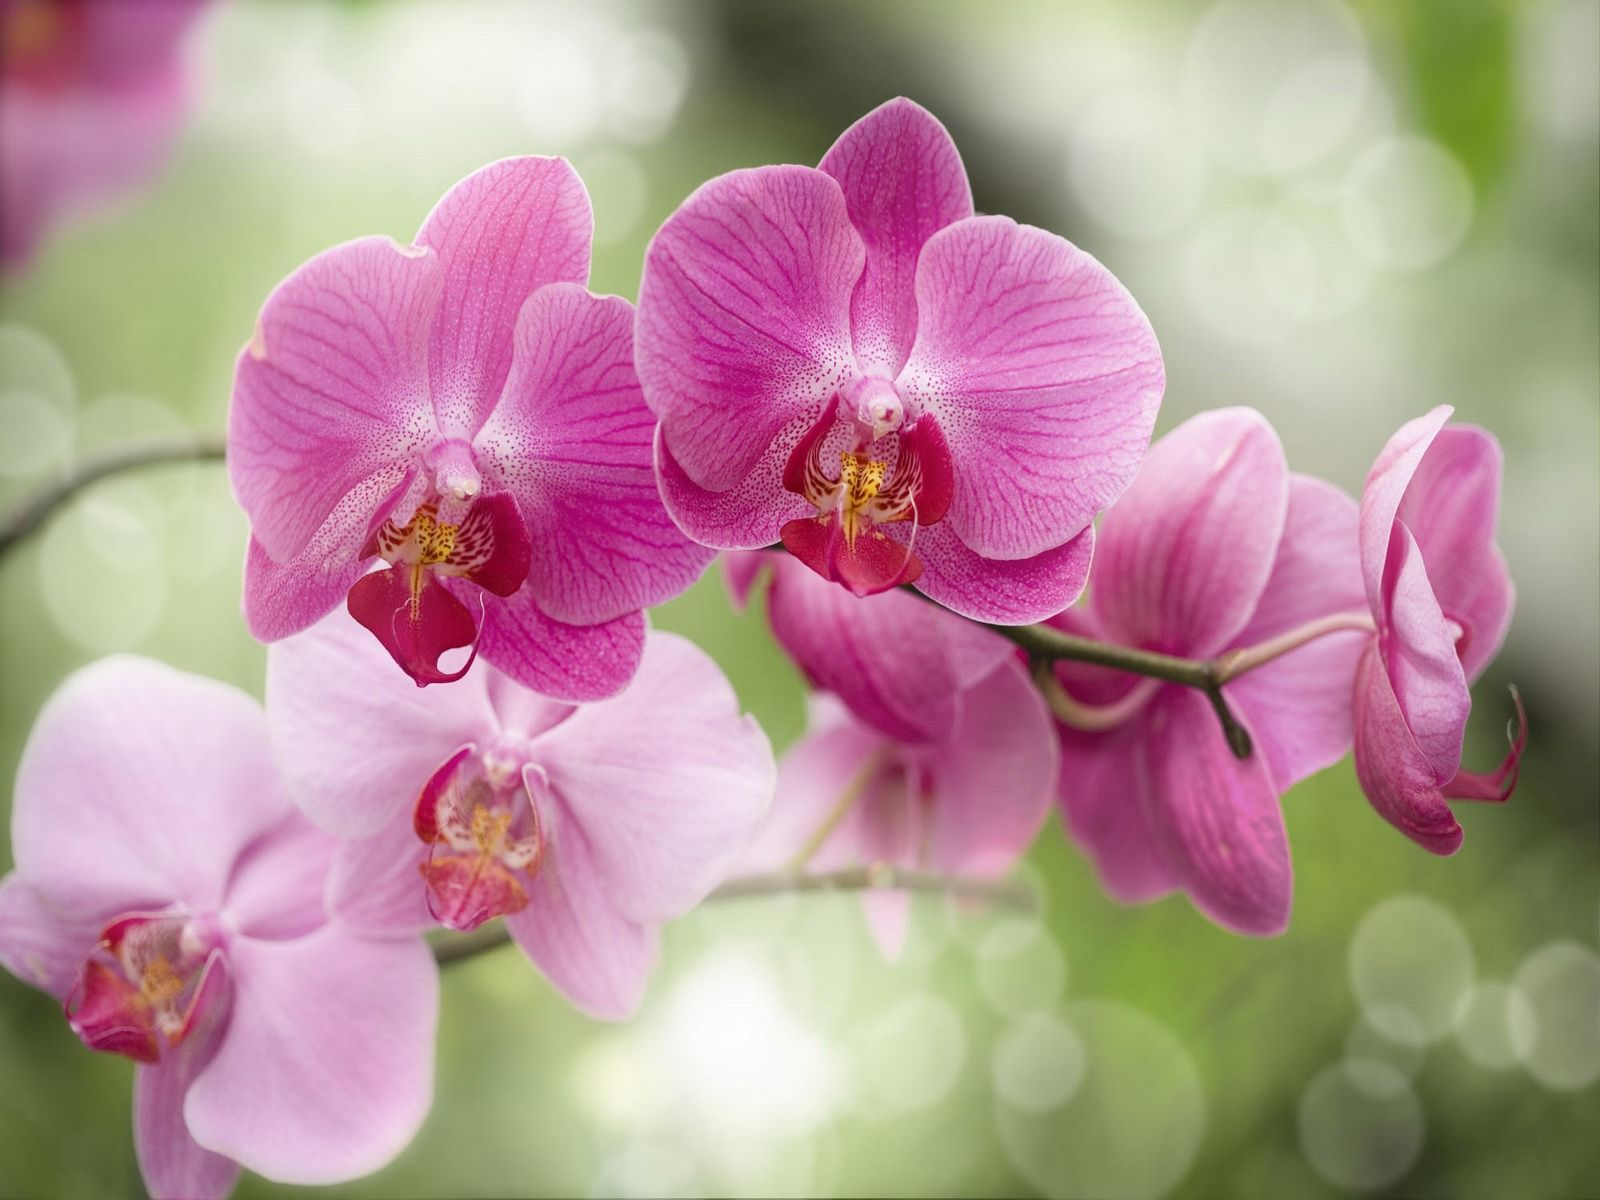 Purple orchids wallpaper viewing gallery 1600x1200px wallpaper the most beautiful orchids wallpaper collection in the world orchids the king of flowers with diverse species color around the world izmirmasajfo